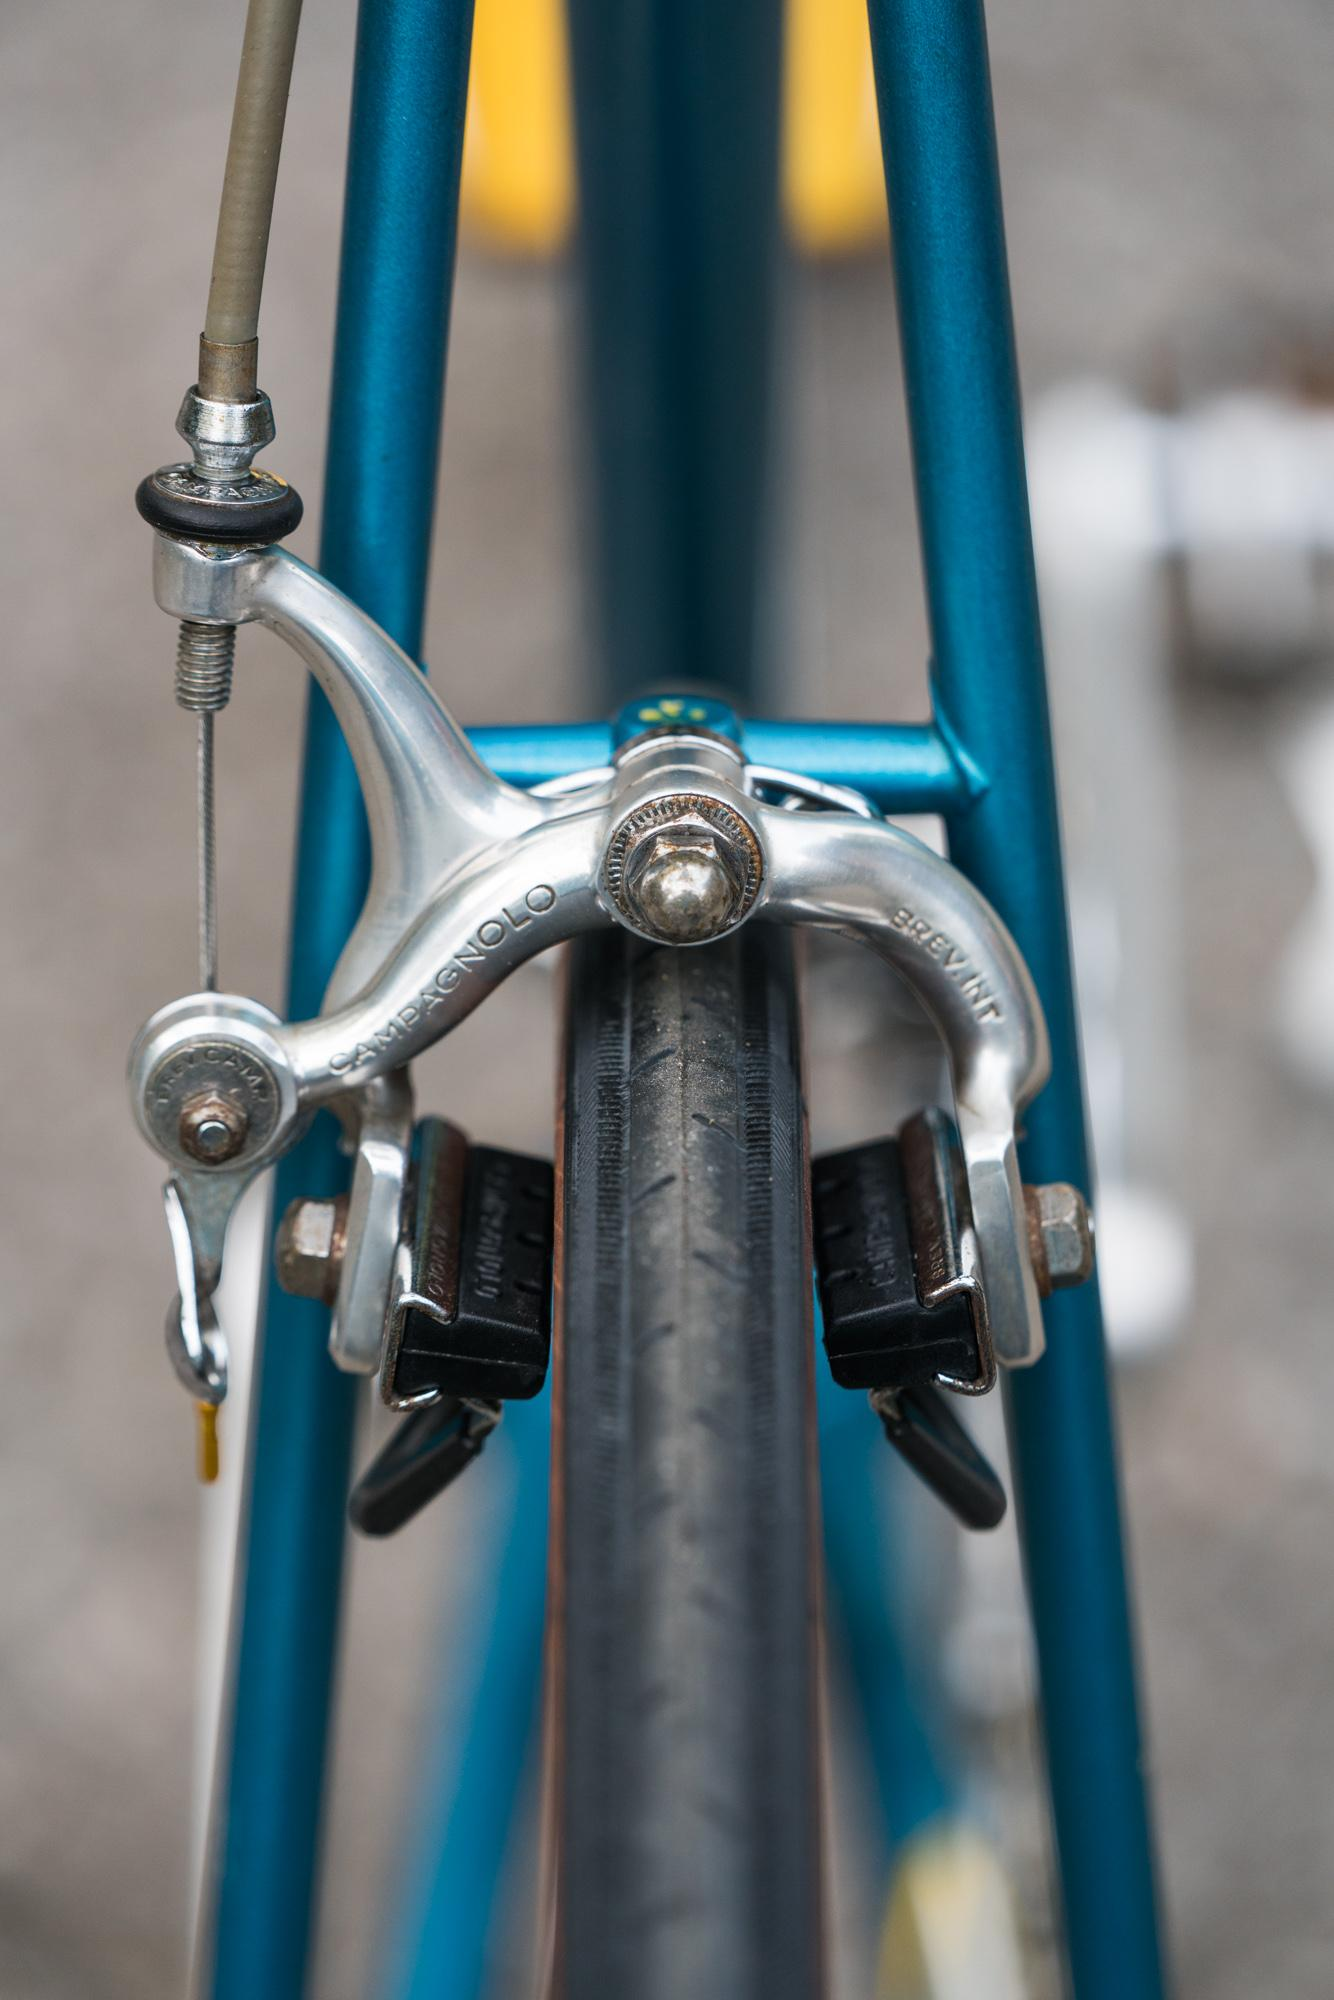 Johns Cool Colnago Coolnago (9 of 27)